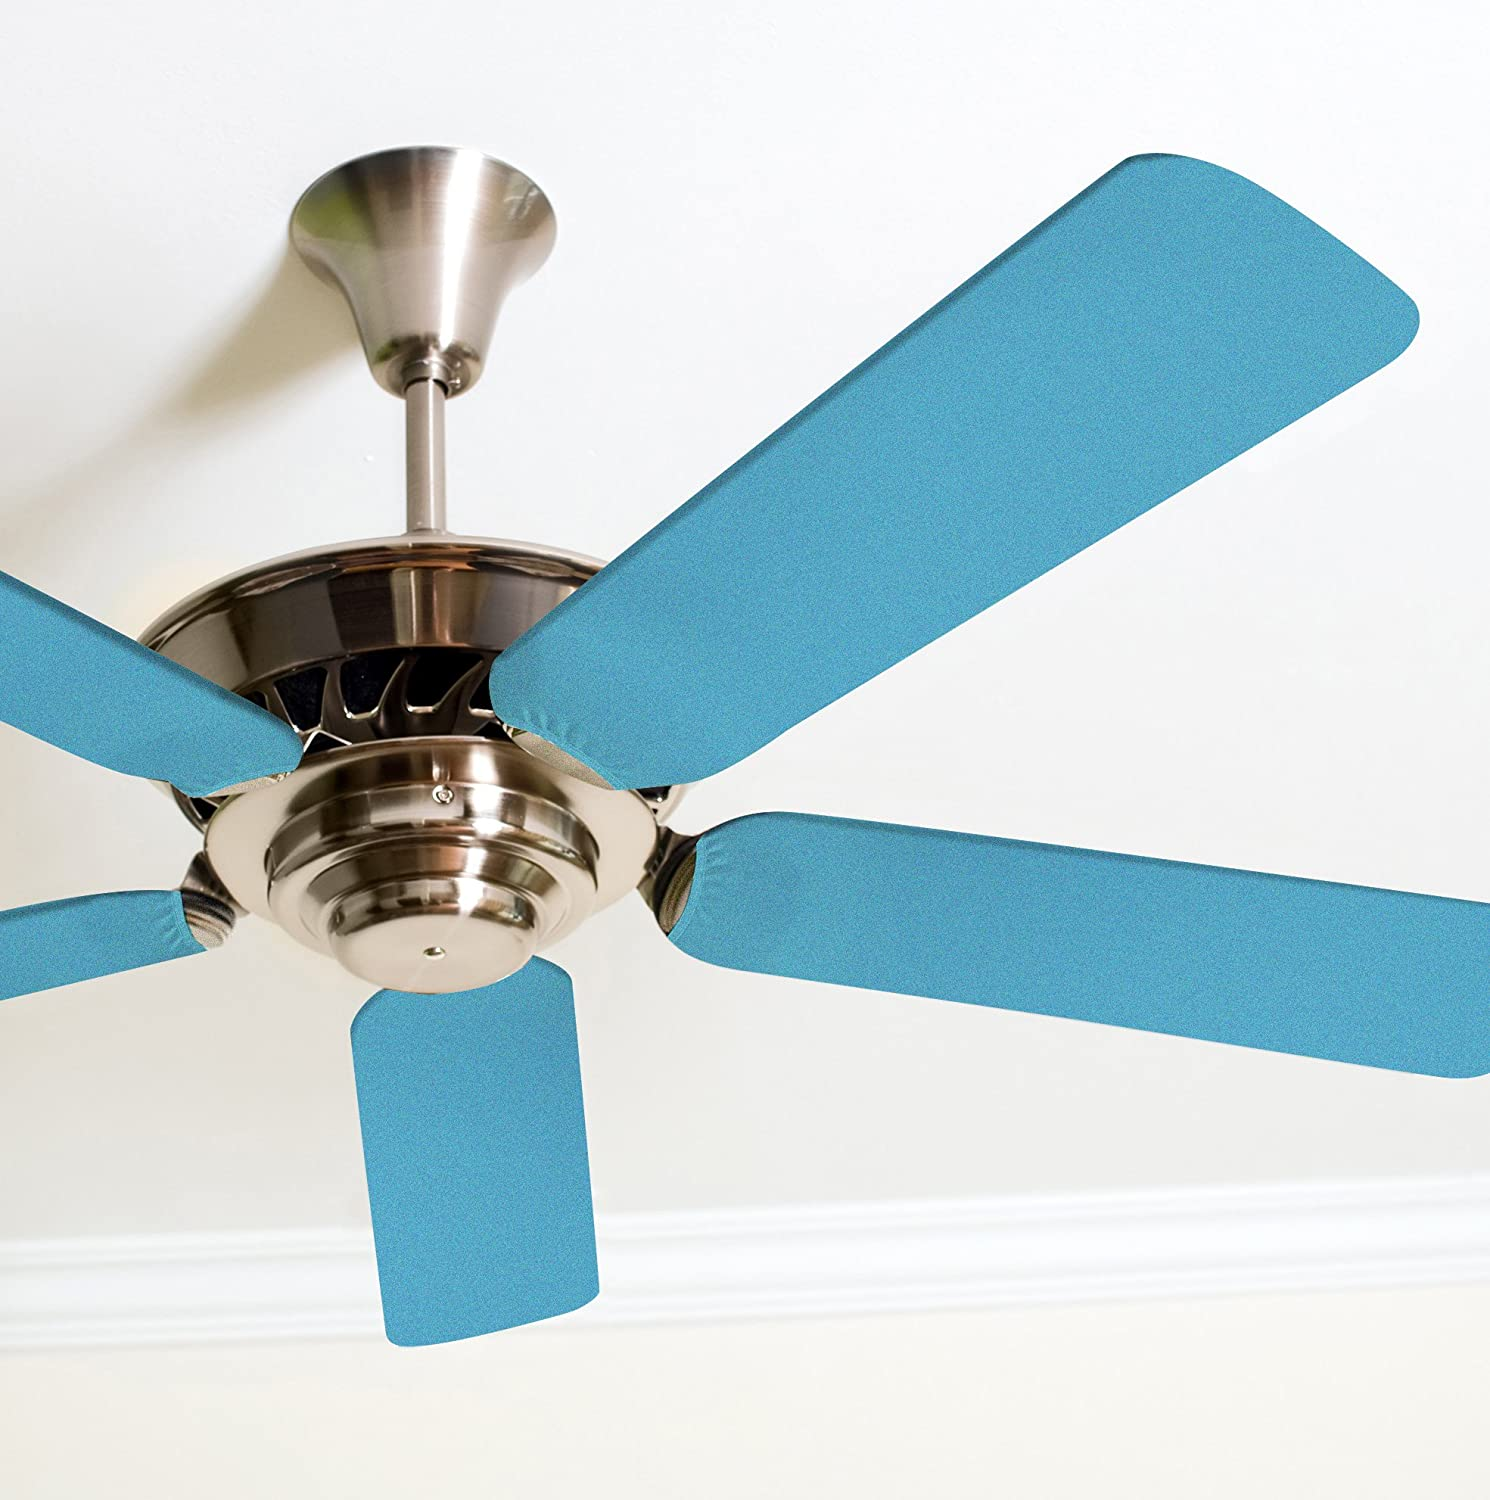 Fancy Blade Ceiling Fan Accessories Blade Cover Decoration, Solid (Light Blue)